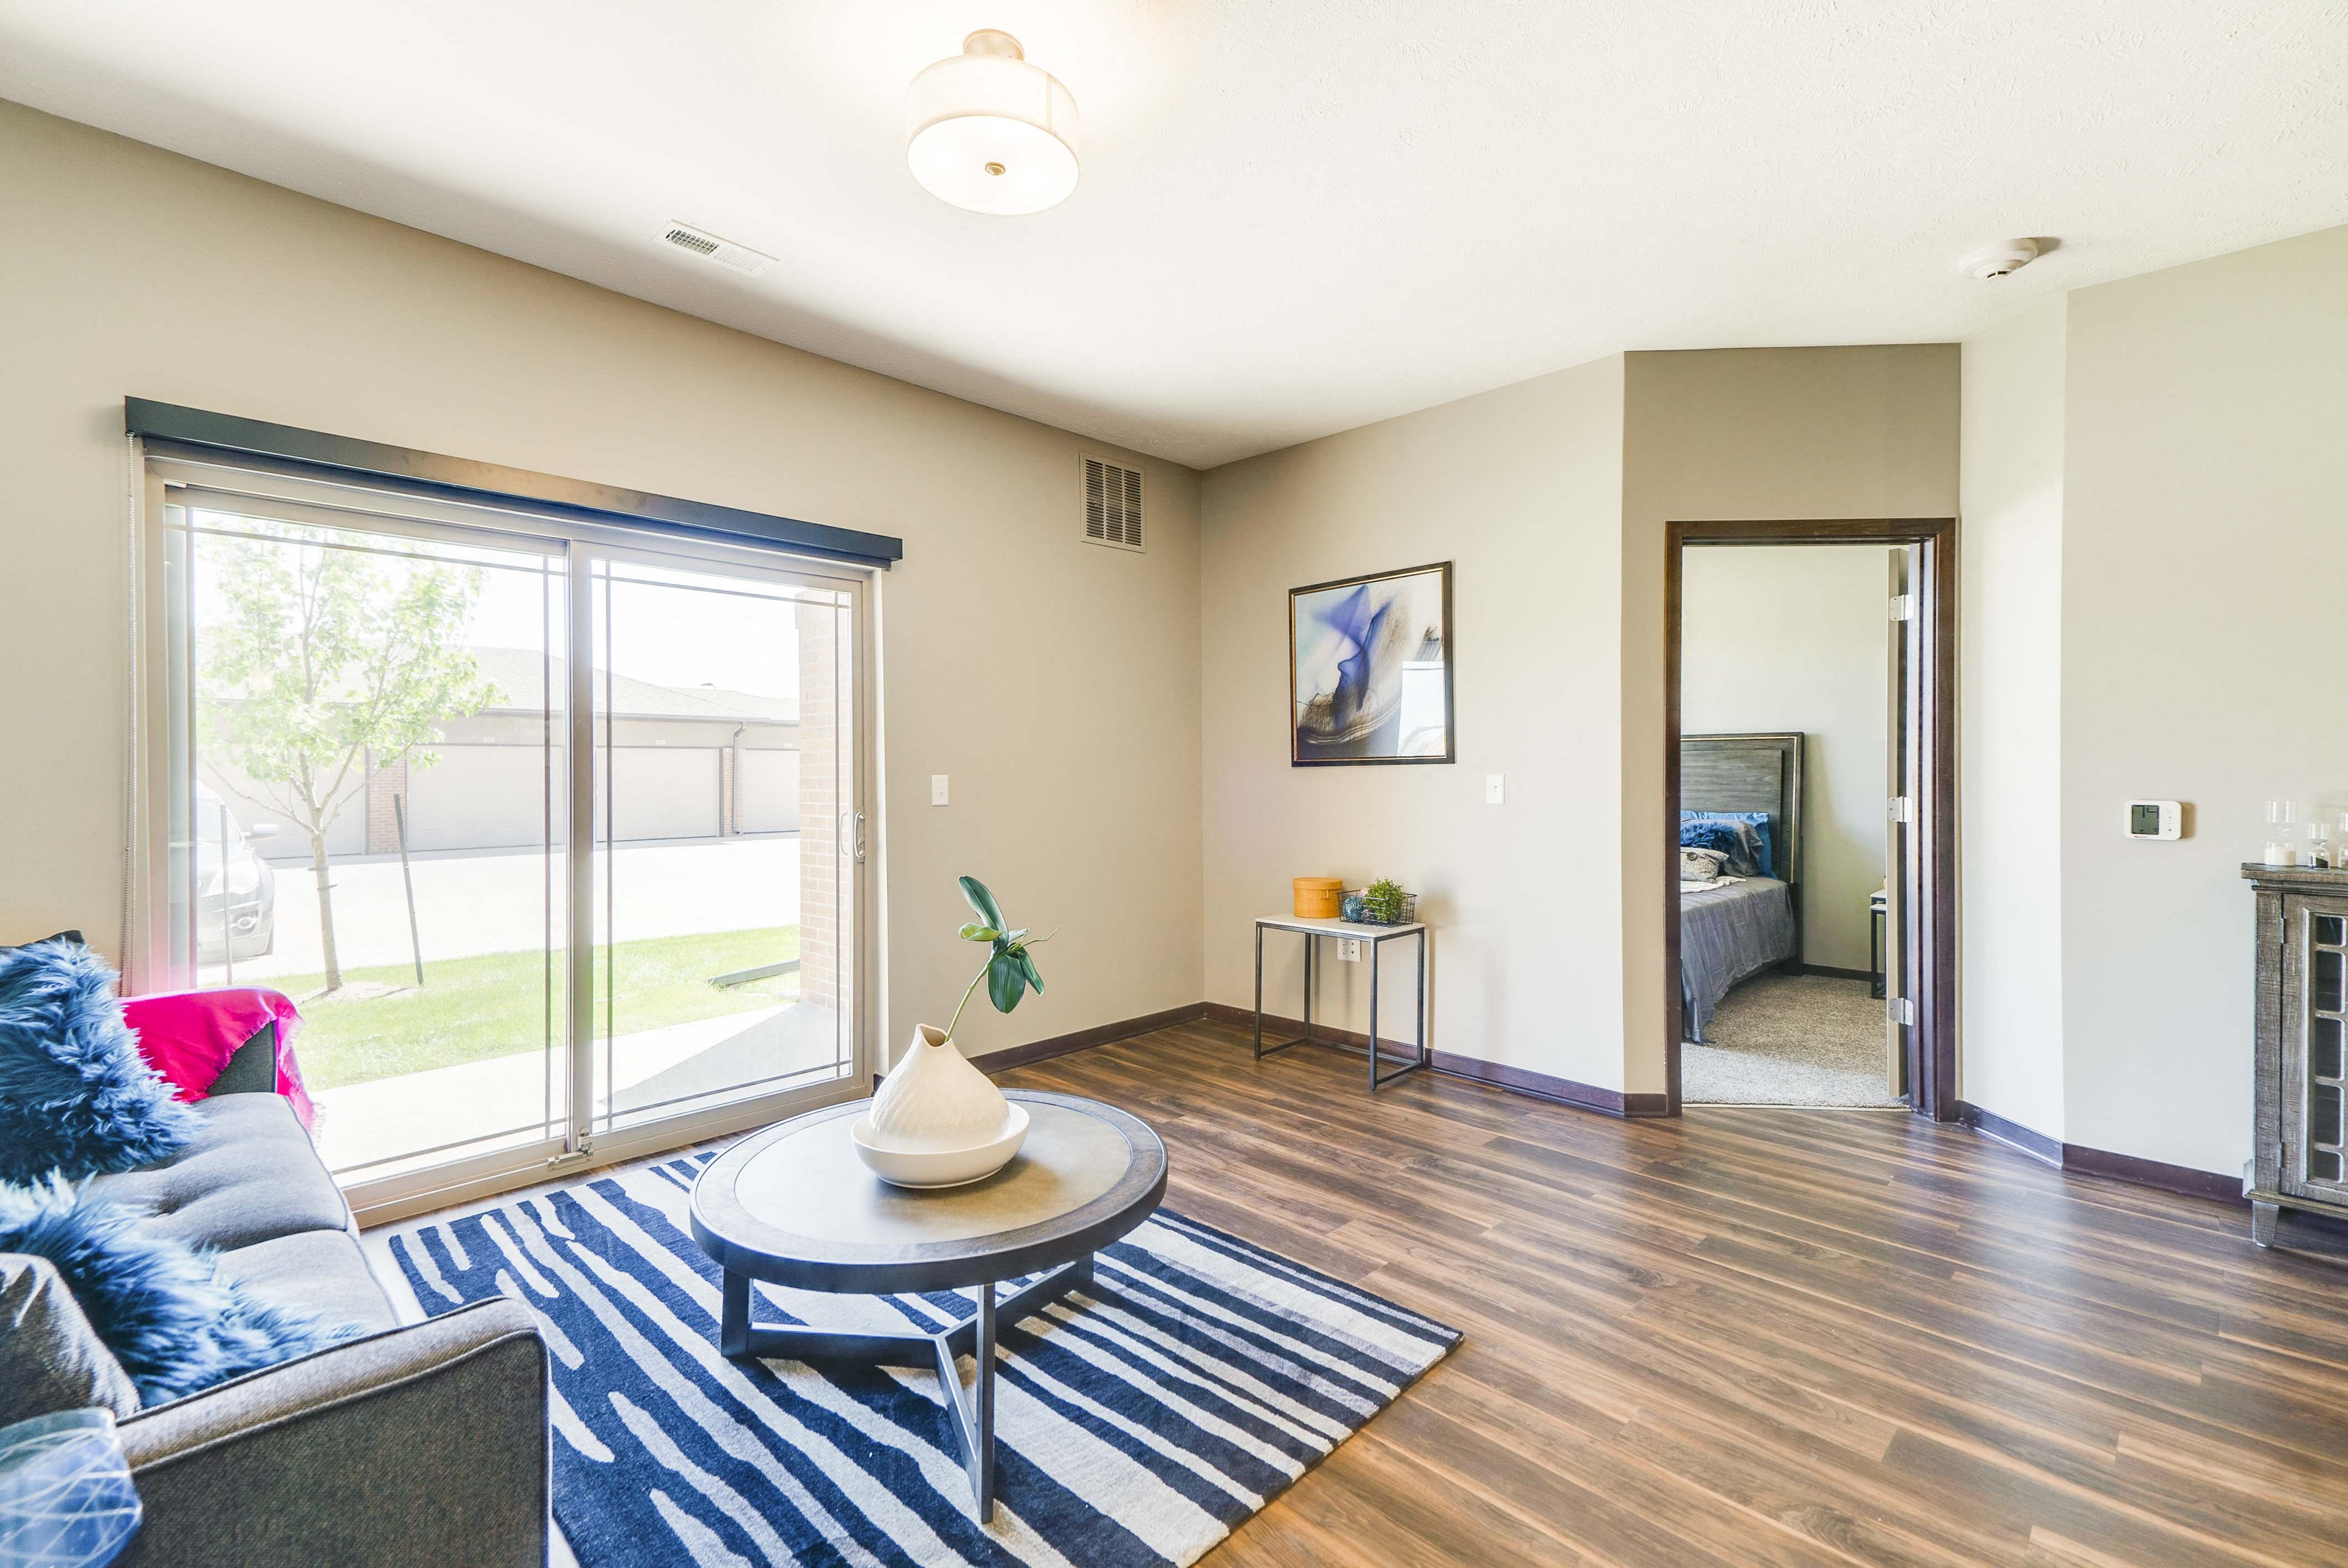 Comfortably spacious living area in a 2 bedroom apartment for rent at 360 at Jordan West best new apartments West Des Moines IA 50266